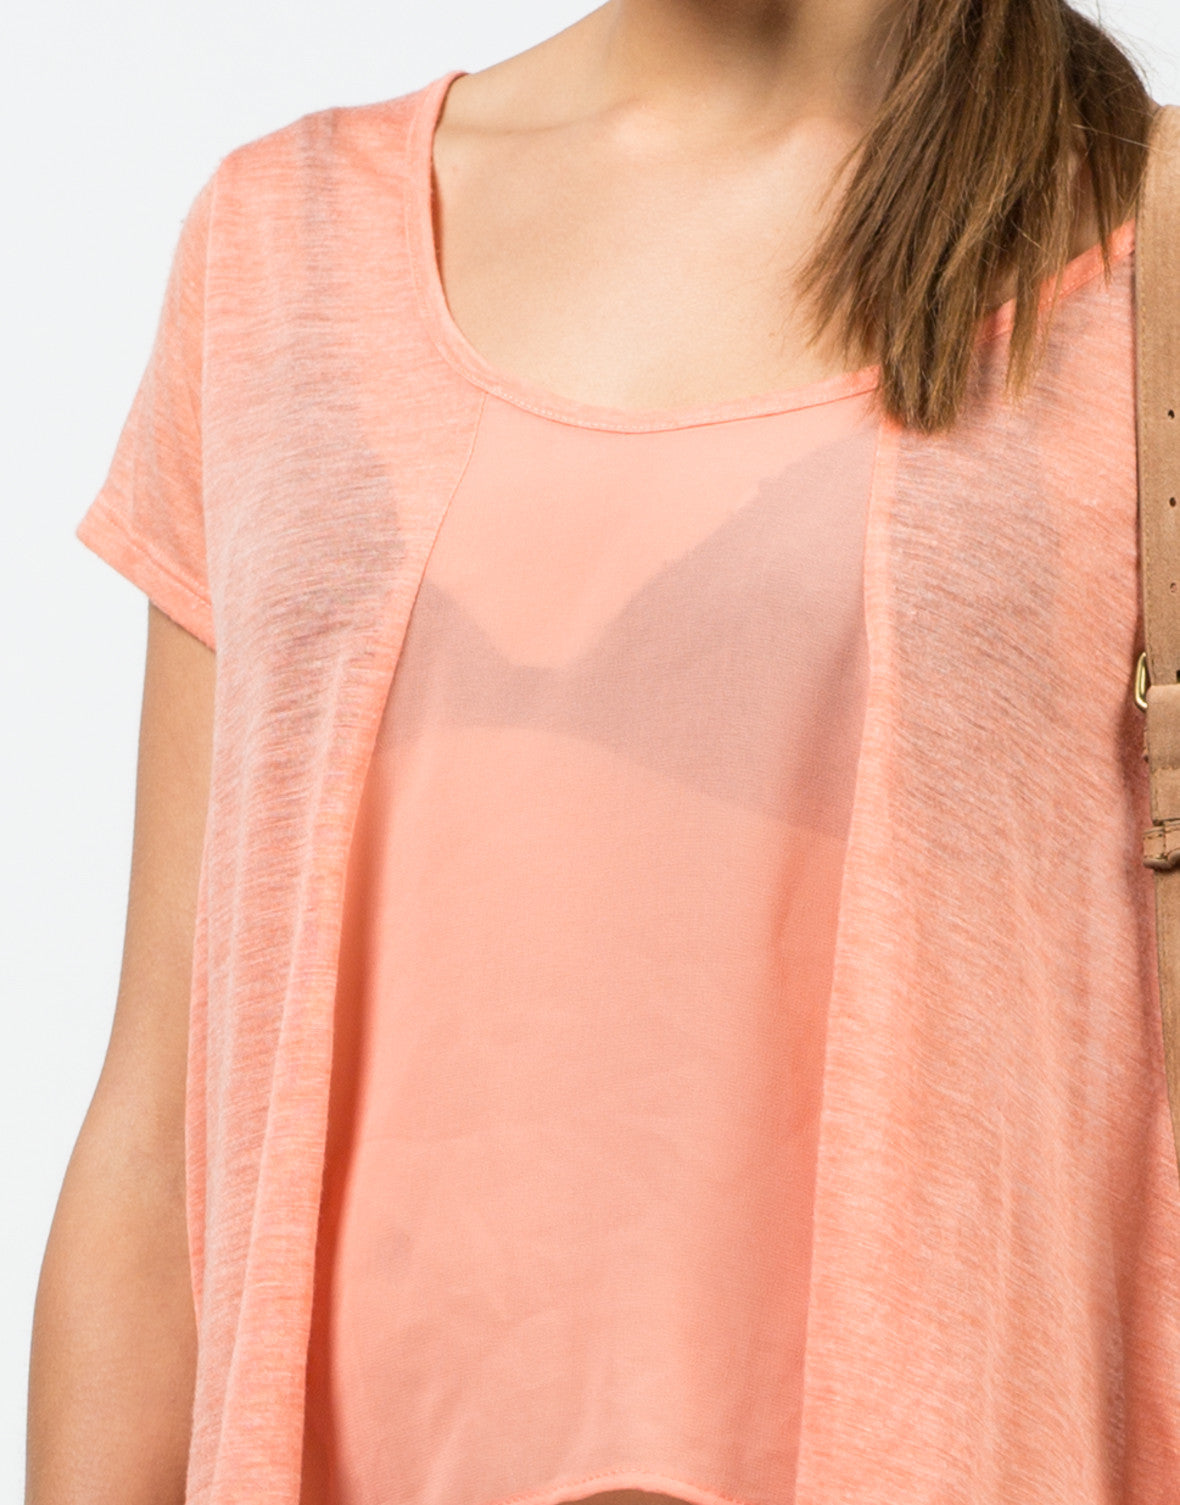 Detail of Flowy Chiffon Blouse